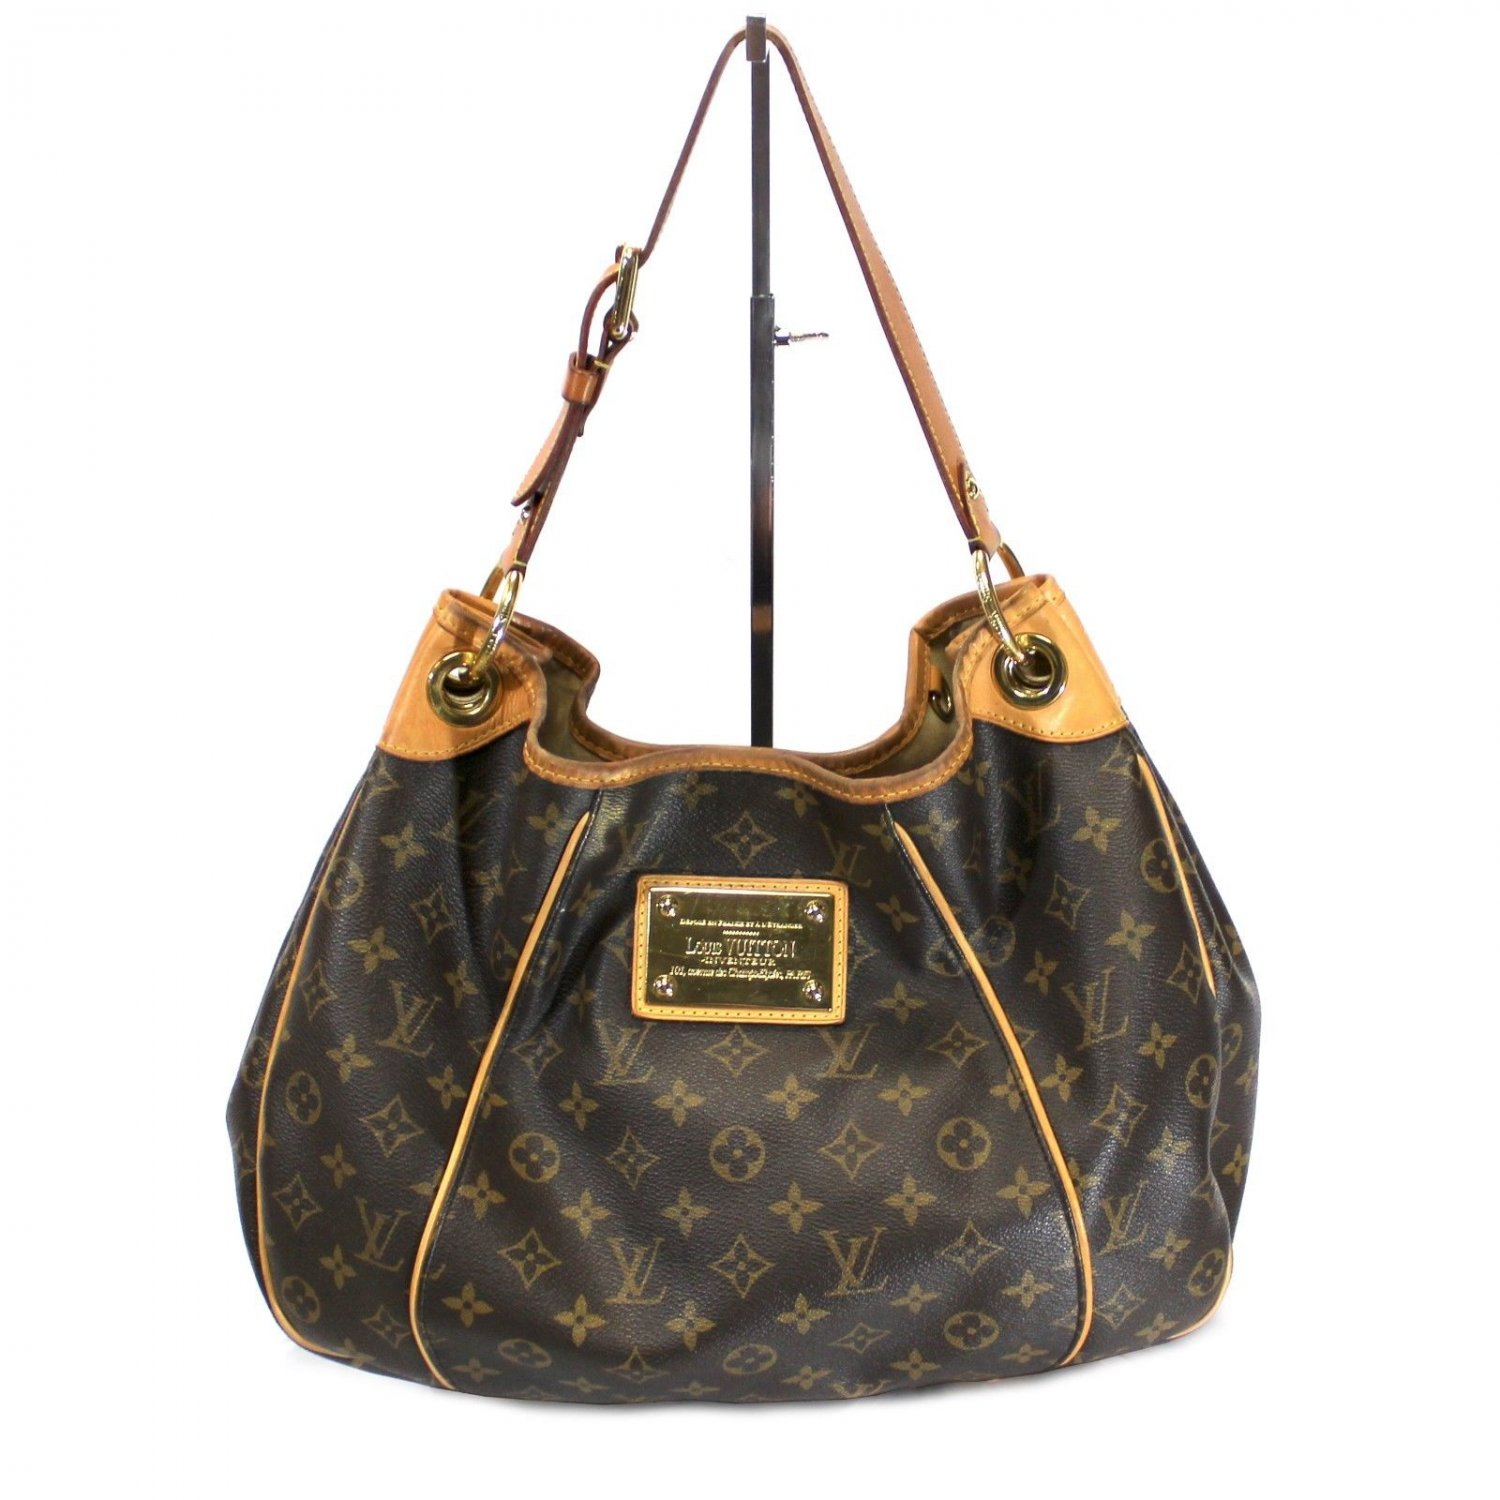 Louis Vuitton Monogram Canvas Galliera PM Hobo with Dust Bag